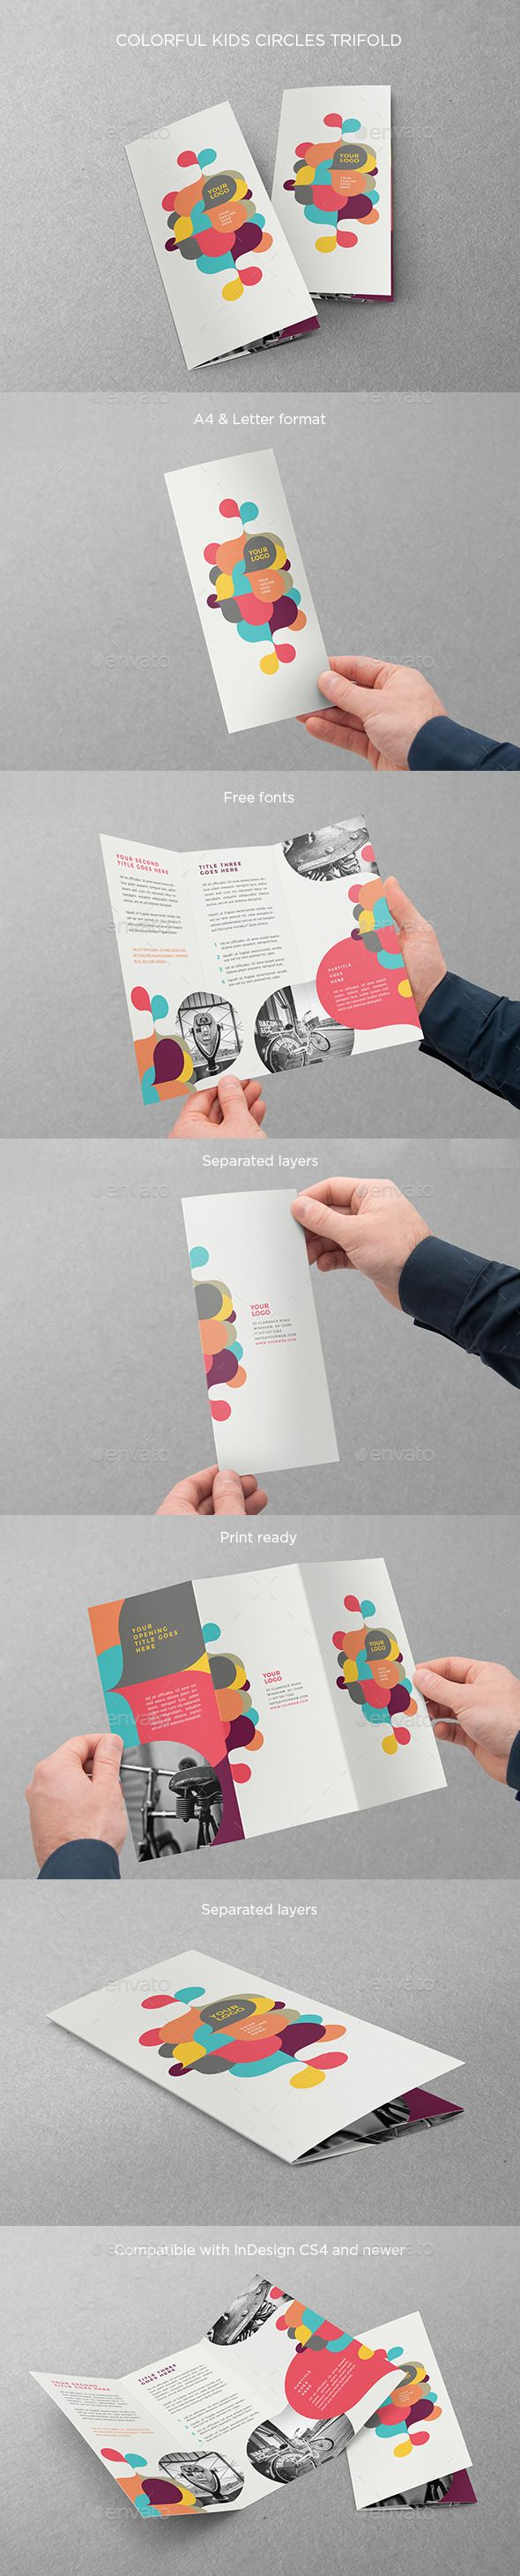 Best Brochure Design Ideas On Pinterest Brochure Layout - Brochure template ideas